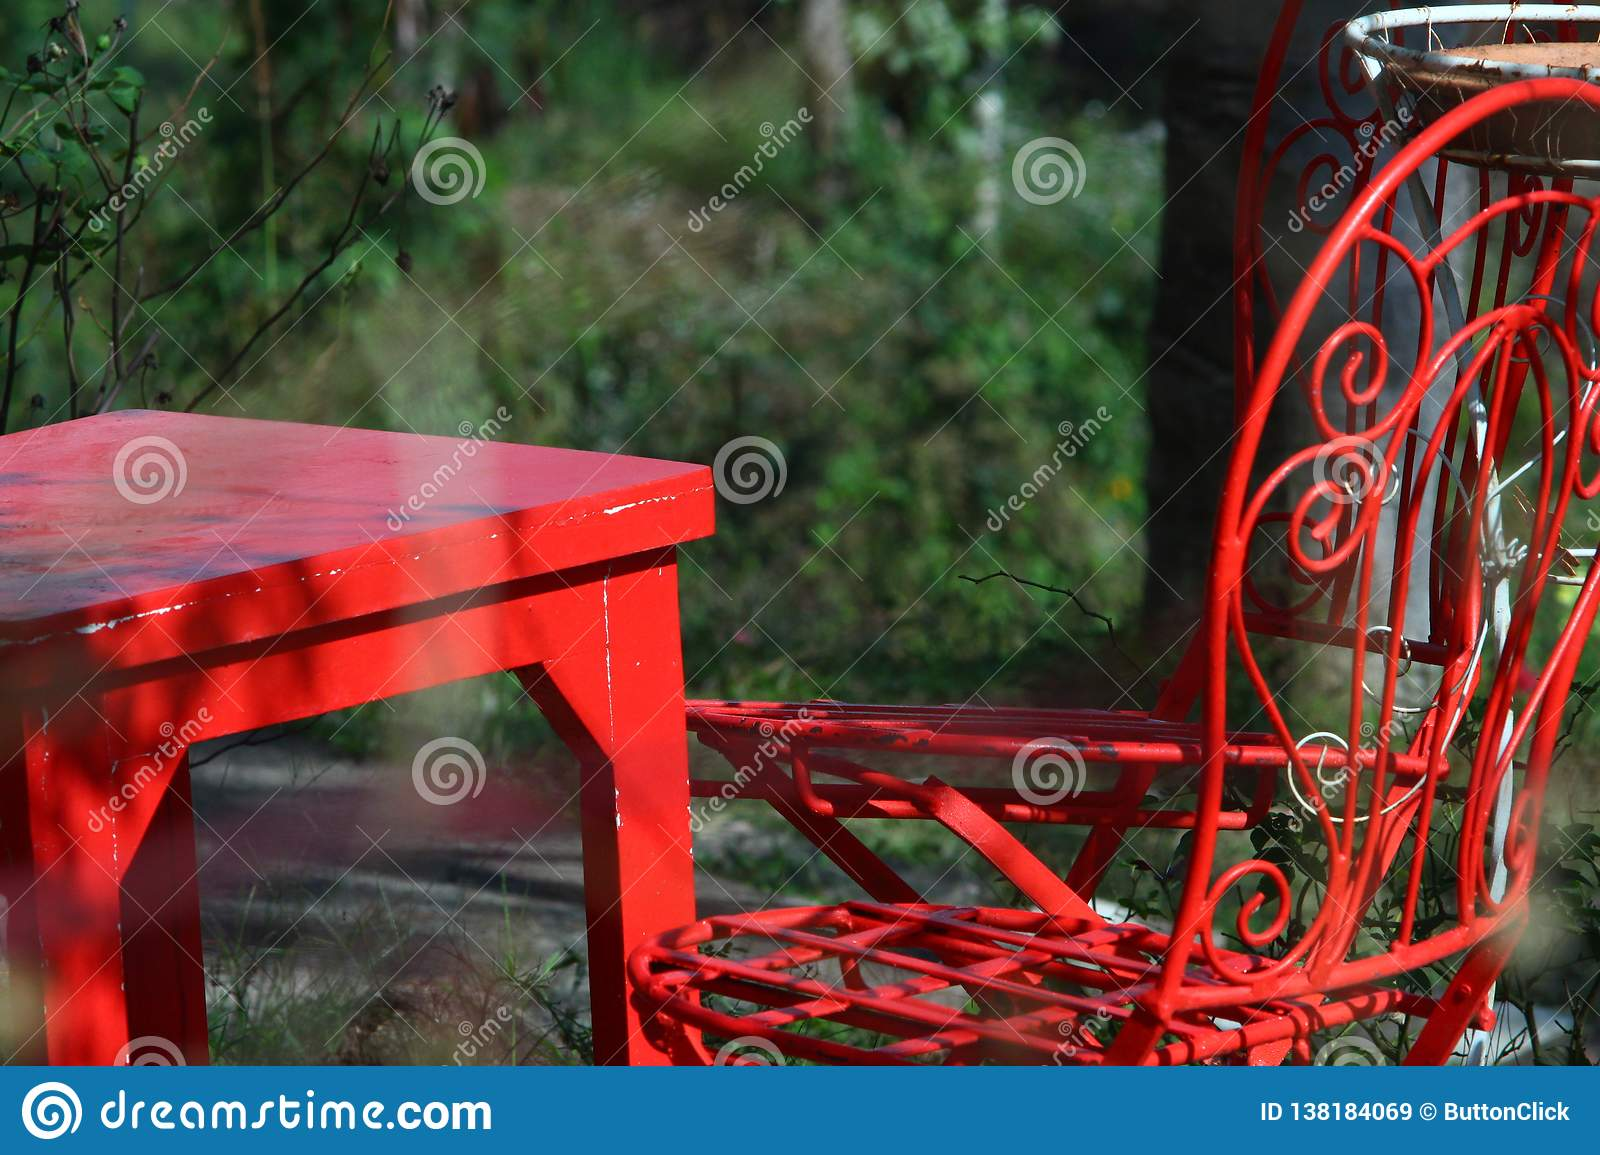 https www dreamstime com patio furniture vintage red chair table green background patio furniture vintage red chair table green background old fashioned image138184069